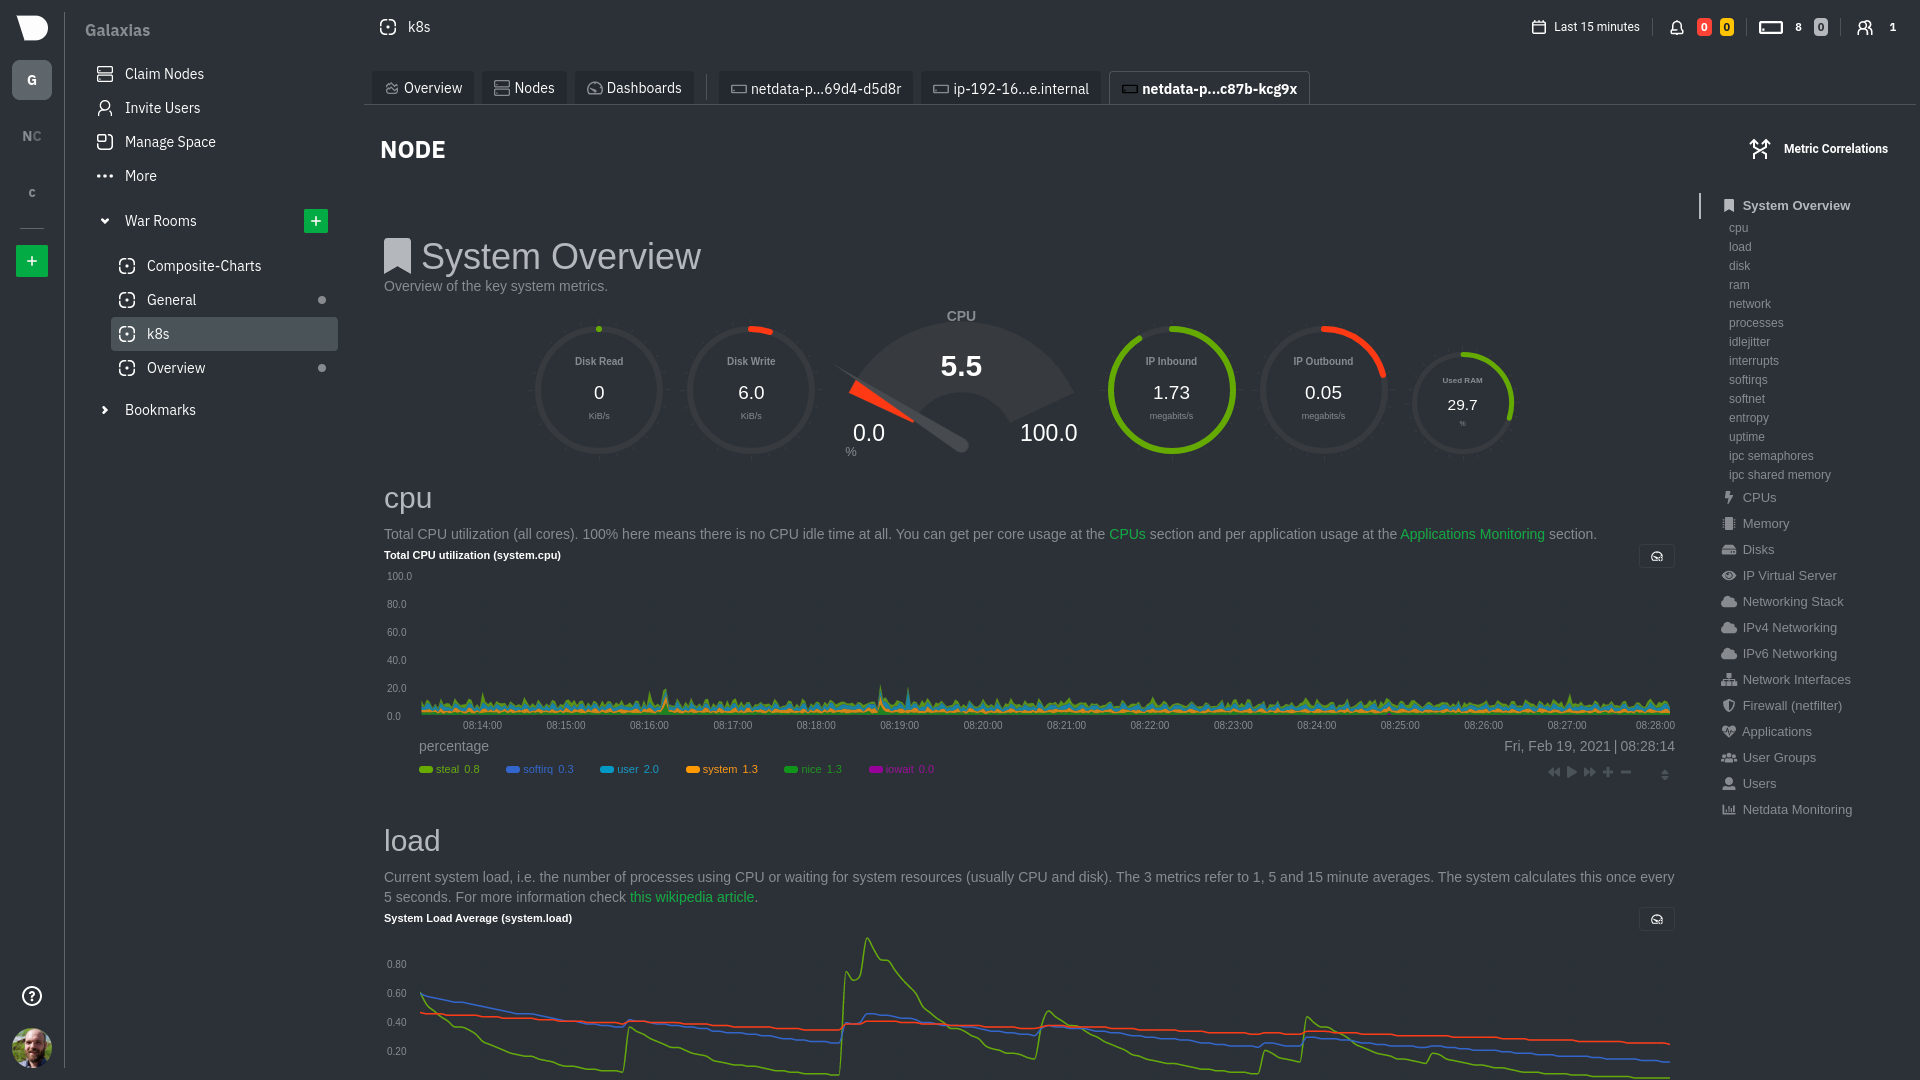 Screenshot of an single-node dashboard